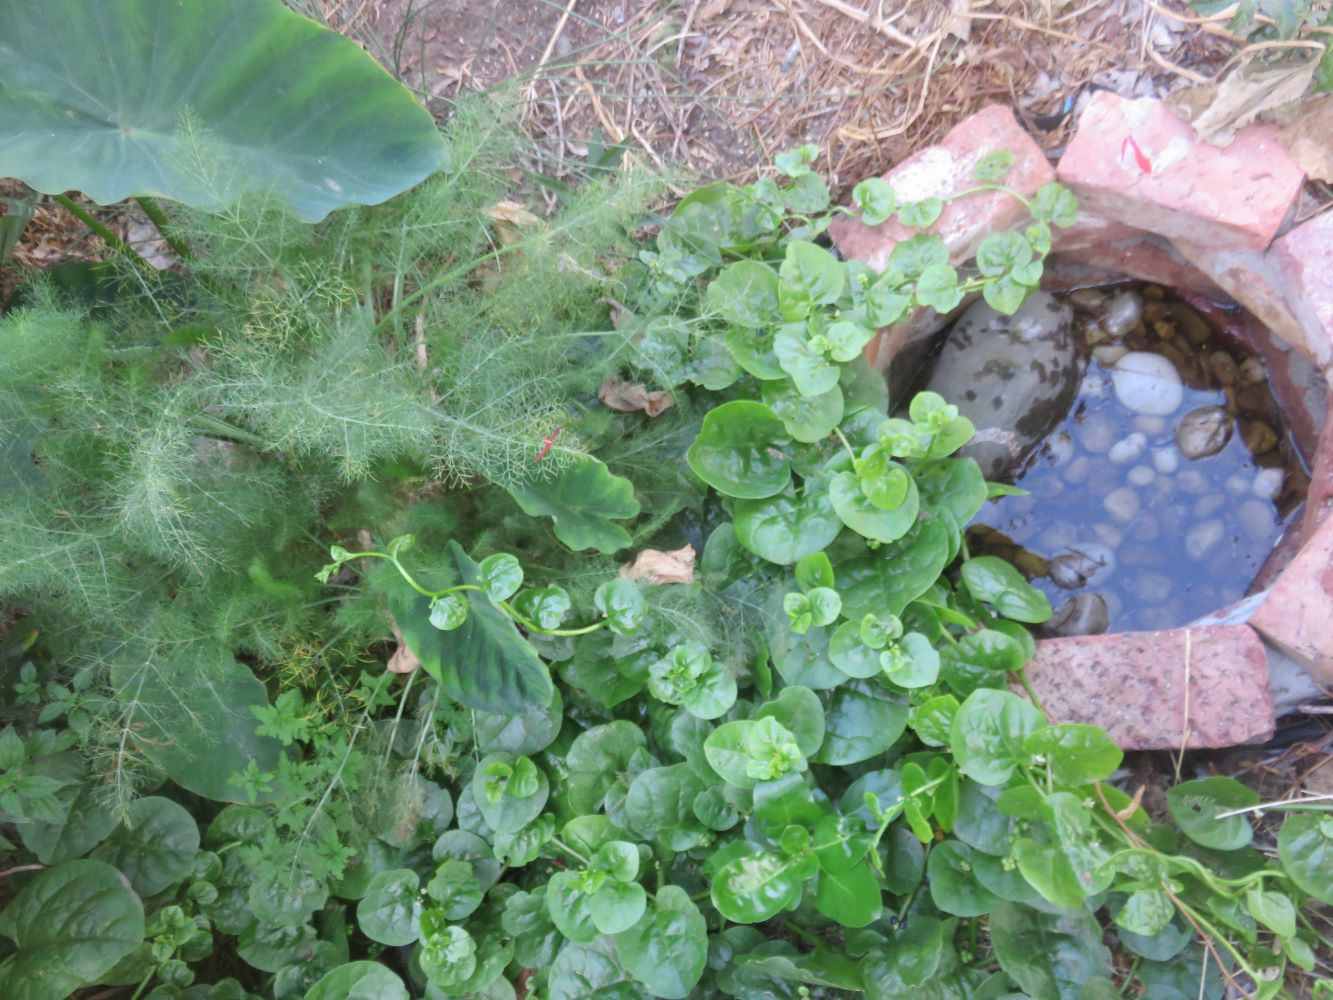 Harnessing living soil in a gray water bio-filter which decomposes the soap and body dirt, to gently and slowly supply plant nutrients. The taro, fennel and climbing spinach are very grateful.